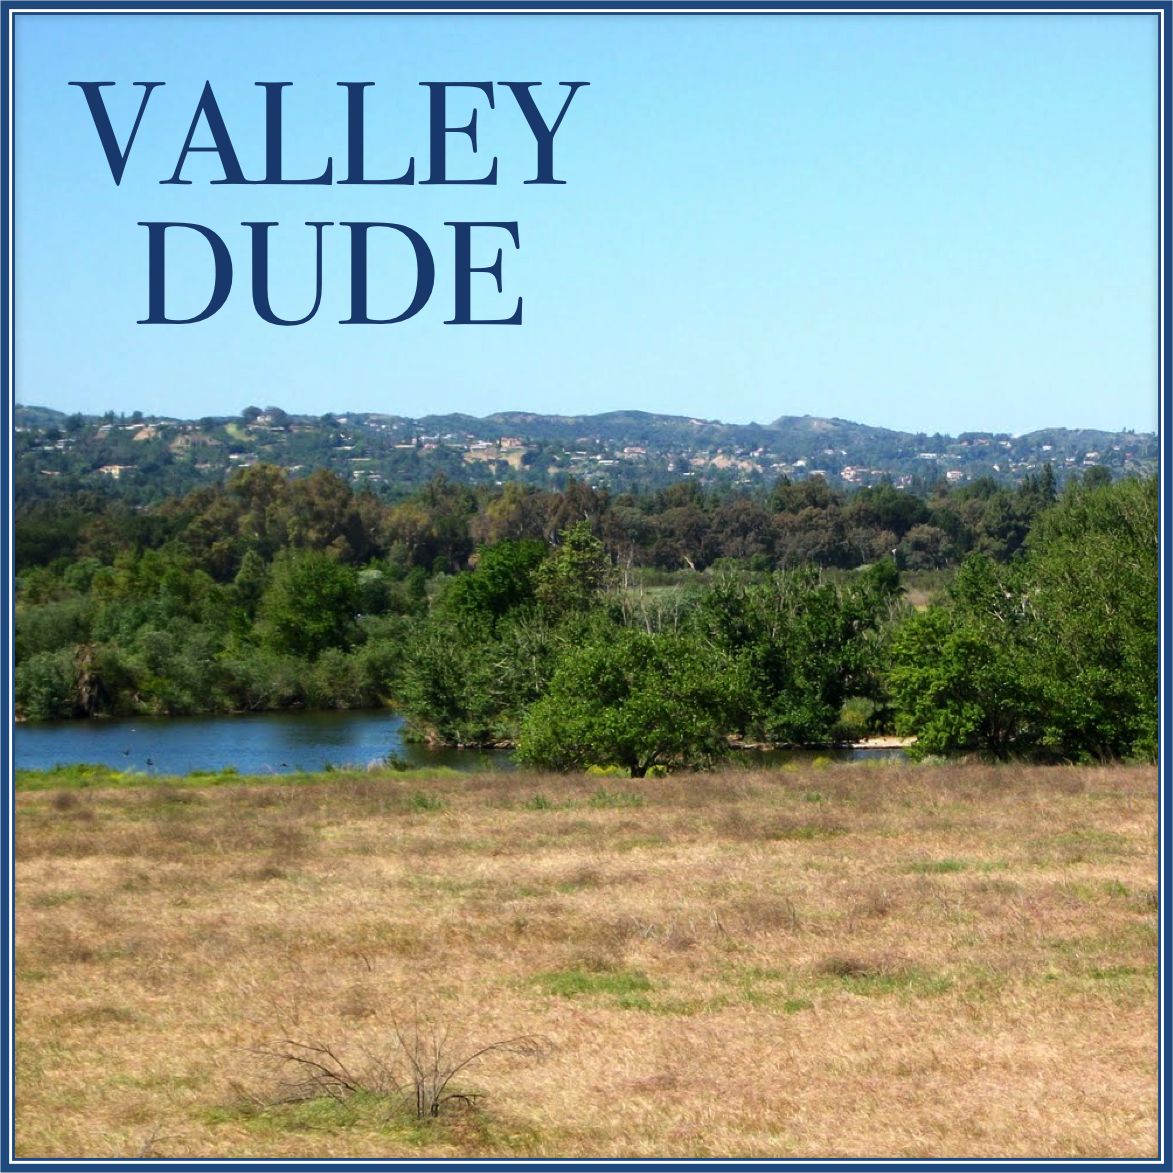 Valley Dude